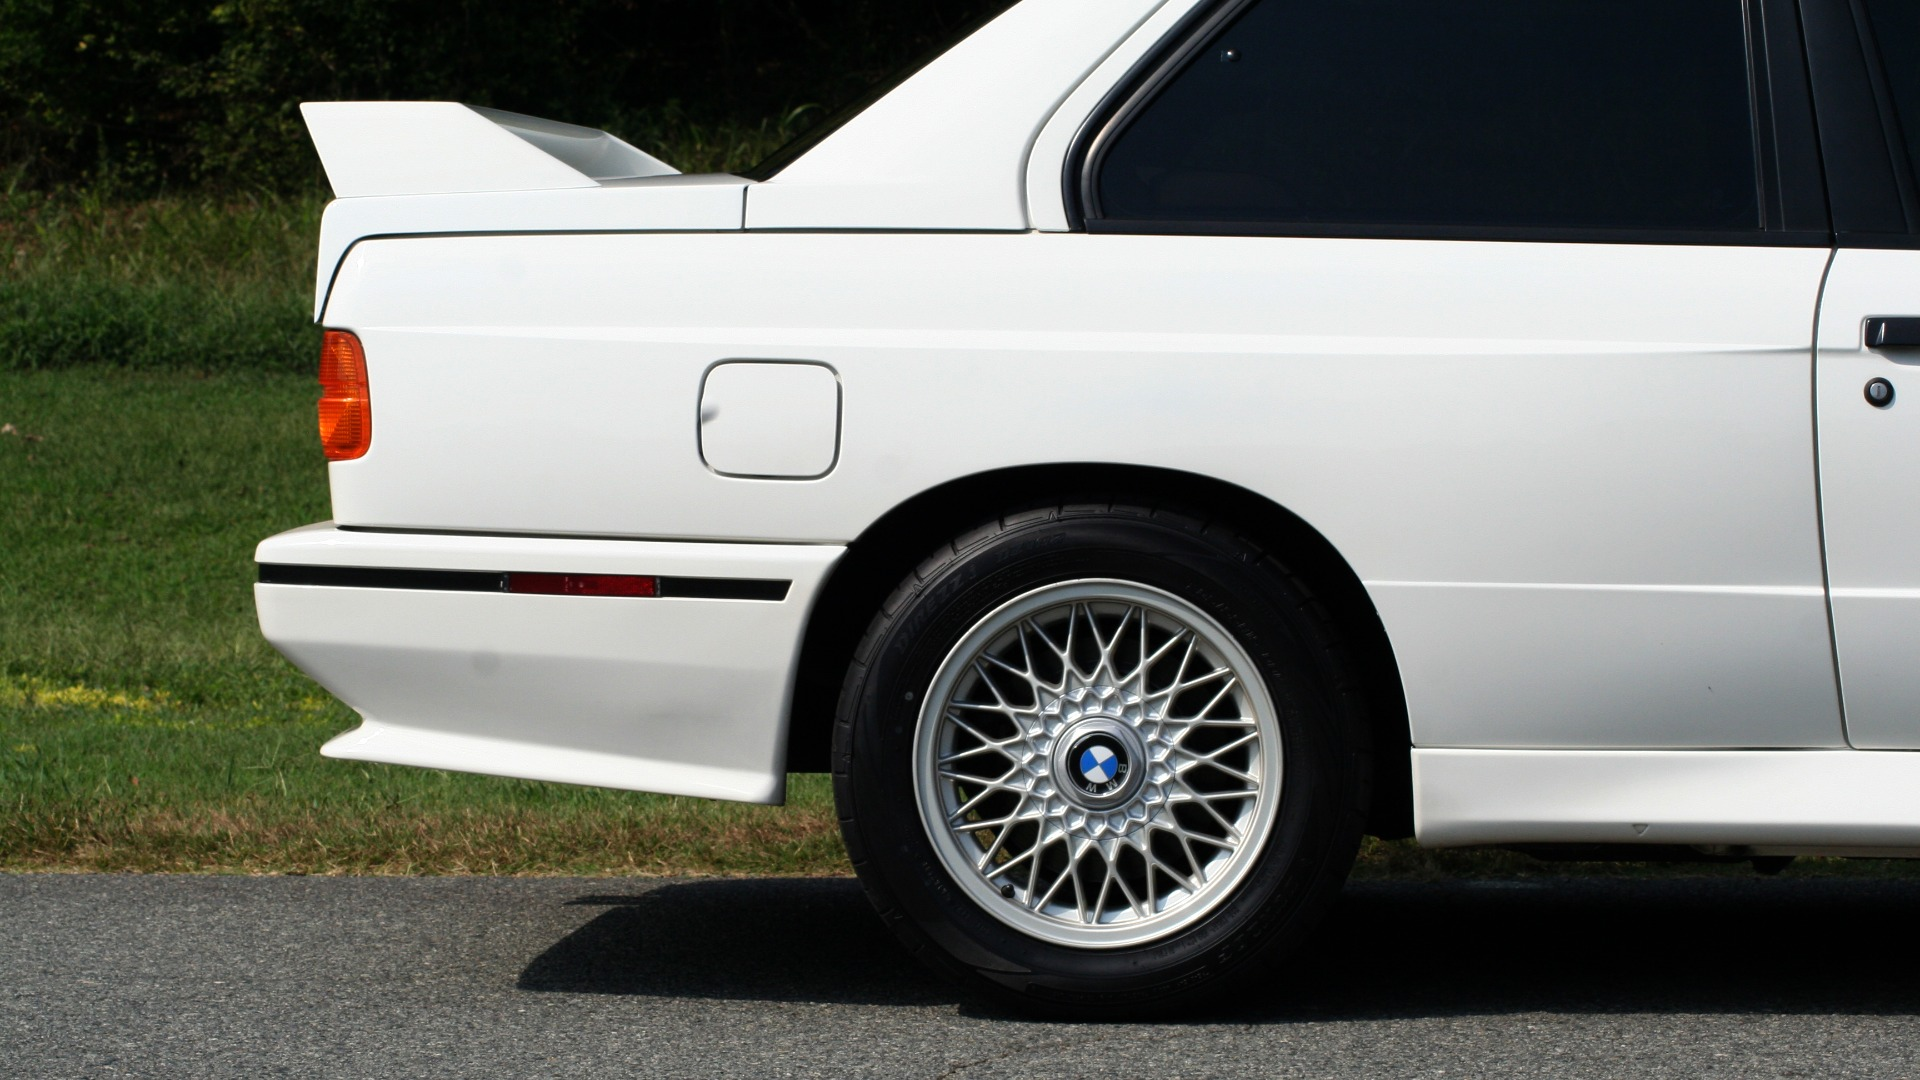 Used 1989 BMW M3 COUPE 2DR / 5-SPEED MAN / LOW MILES / SUPER CLEAN for sale Sold at Formula Imports in Charlotte NC 28227 8